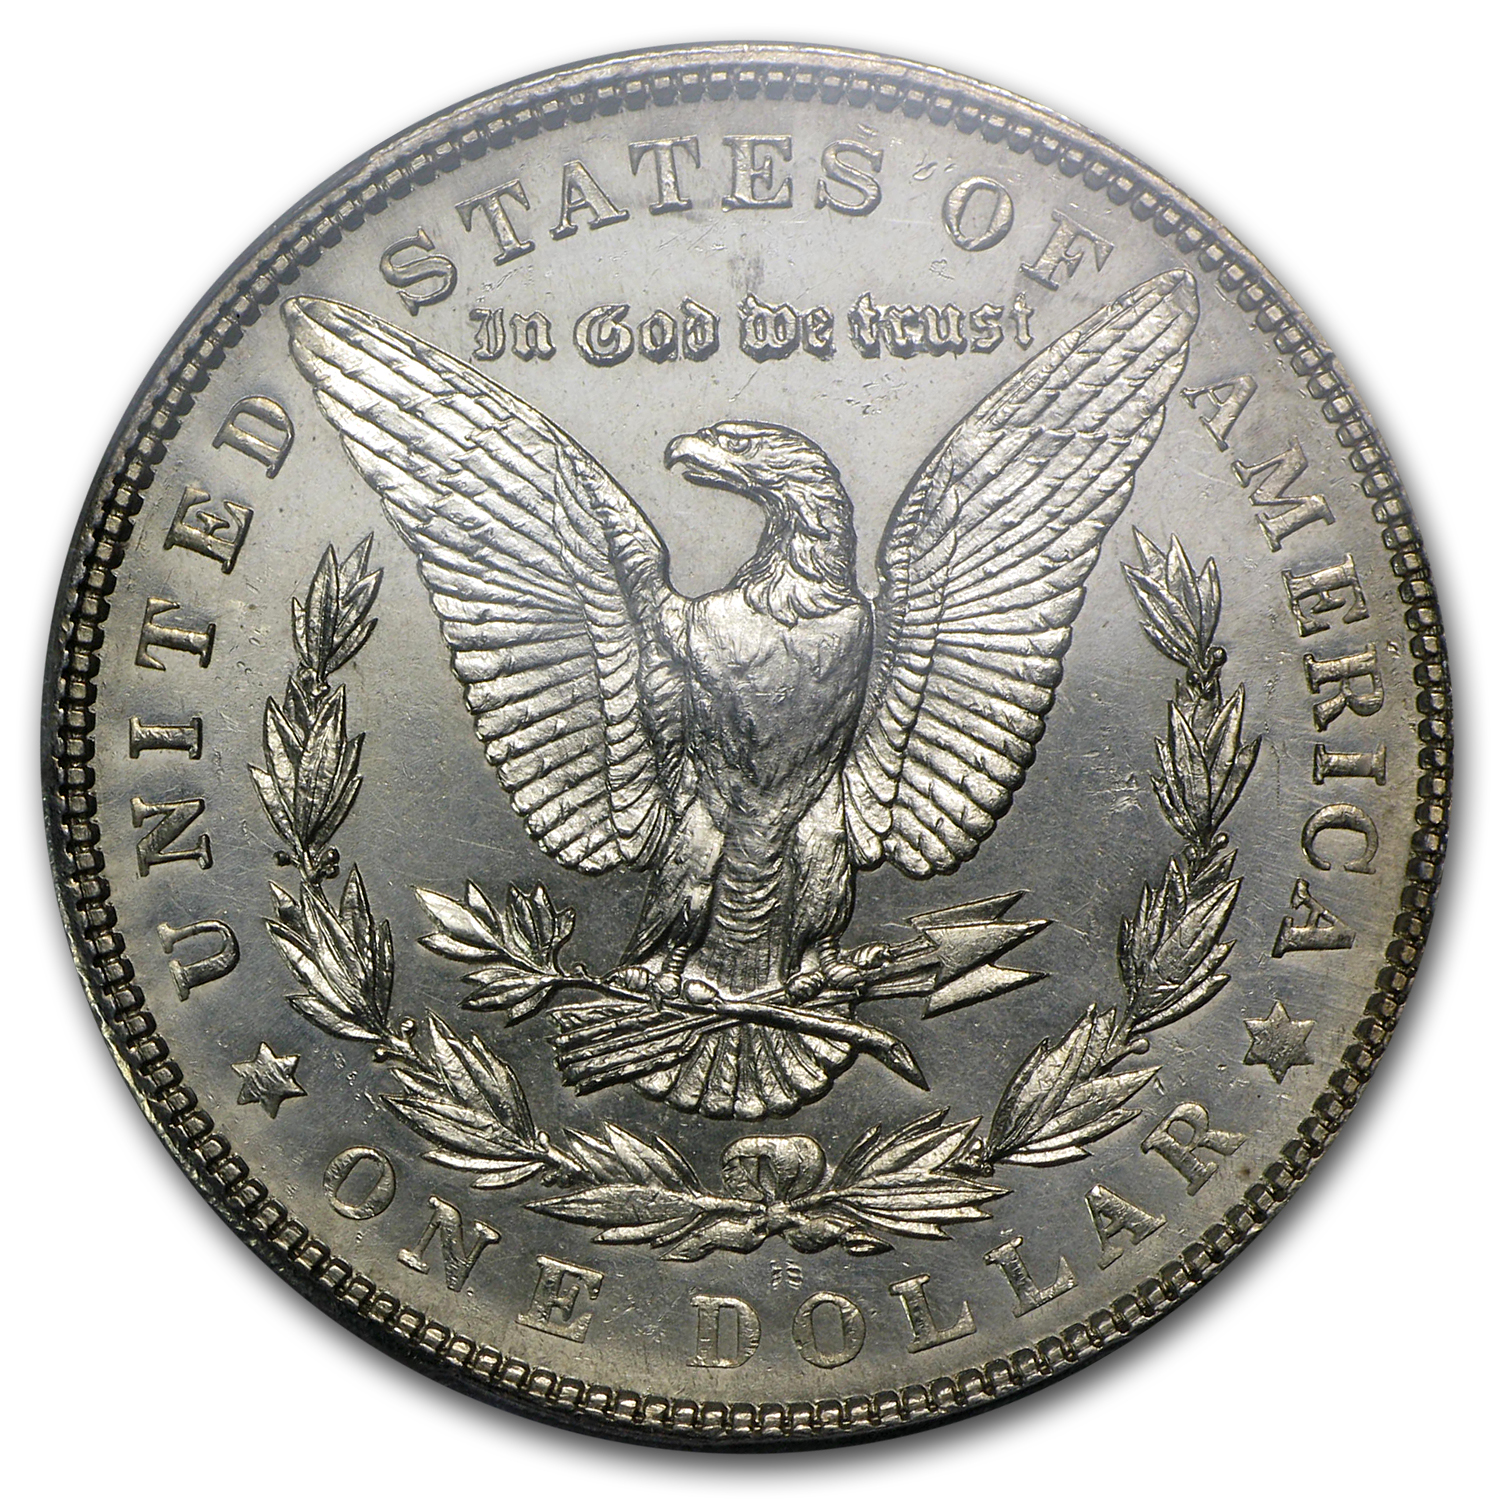 1903 Morgan Dollar - MS-62 PL Proof Like PCGS